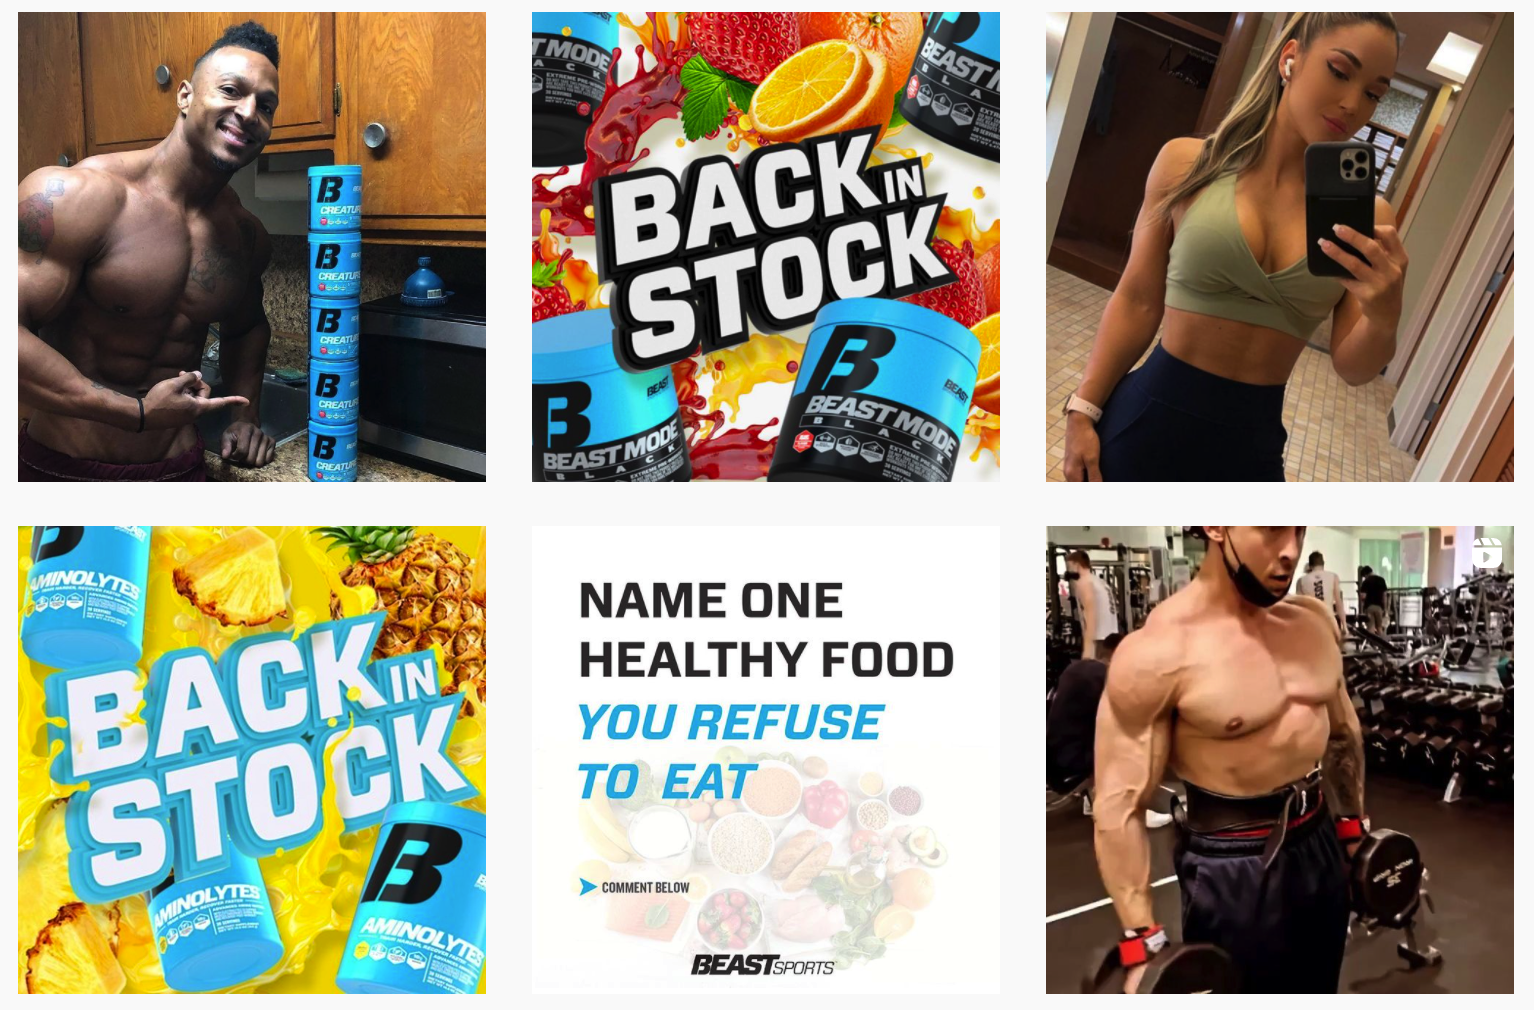 Beast Sports Nutrition | Fitness Influencer Programs Featured on Afluencer